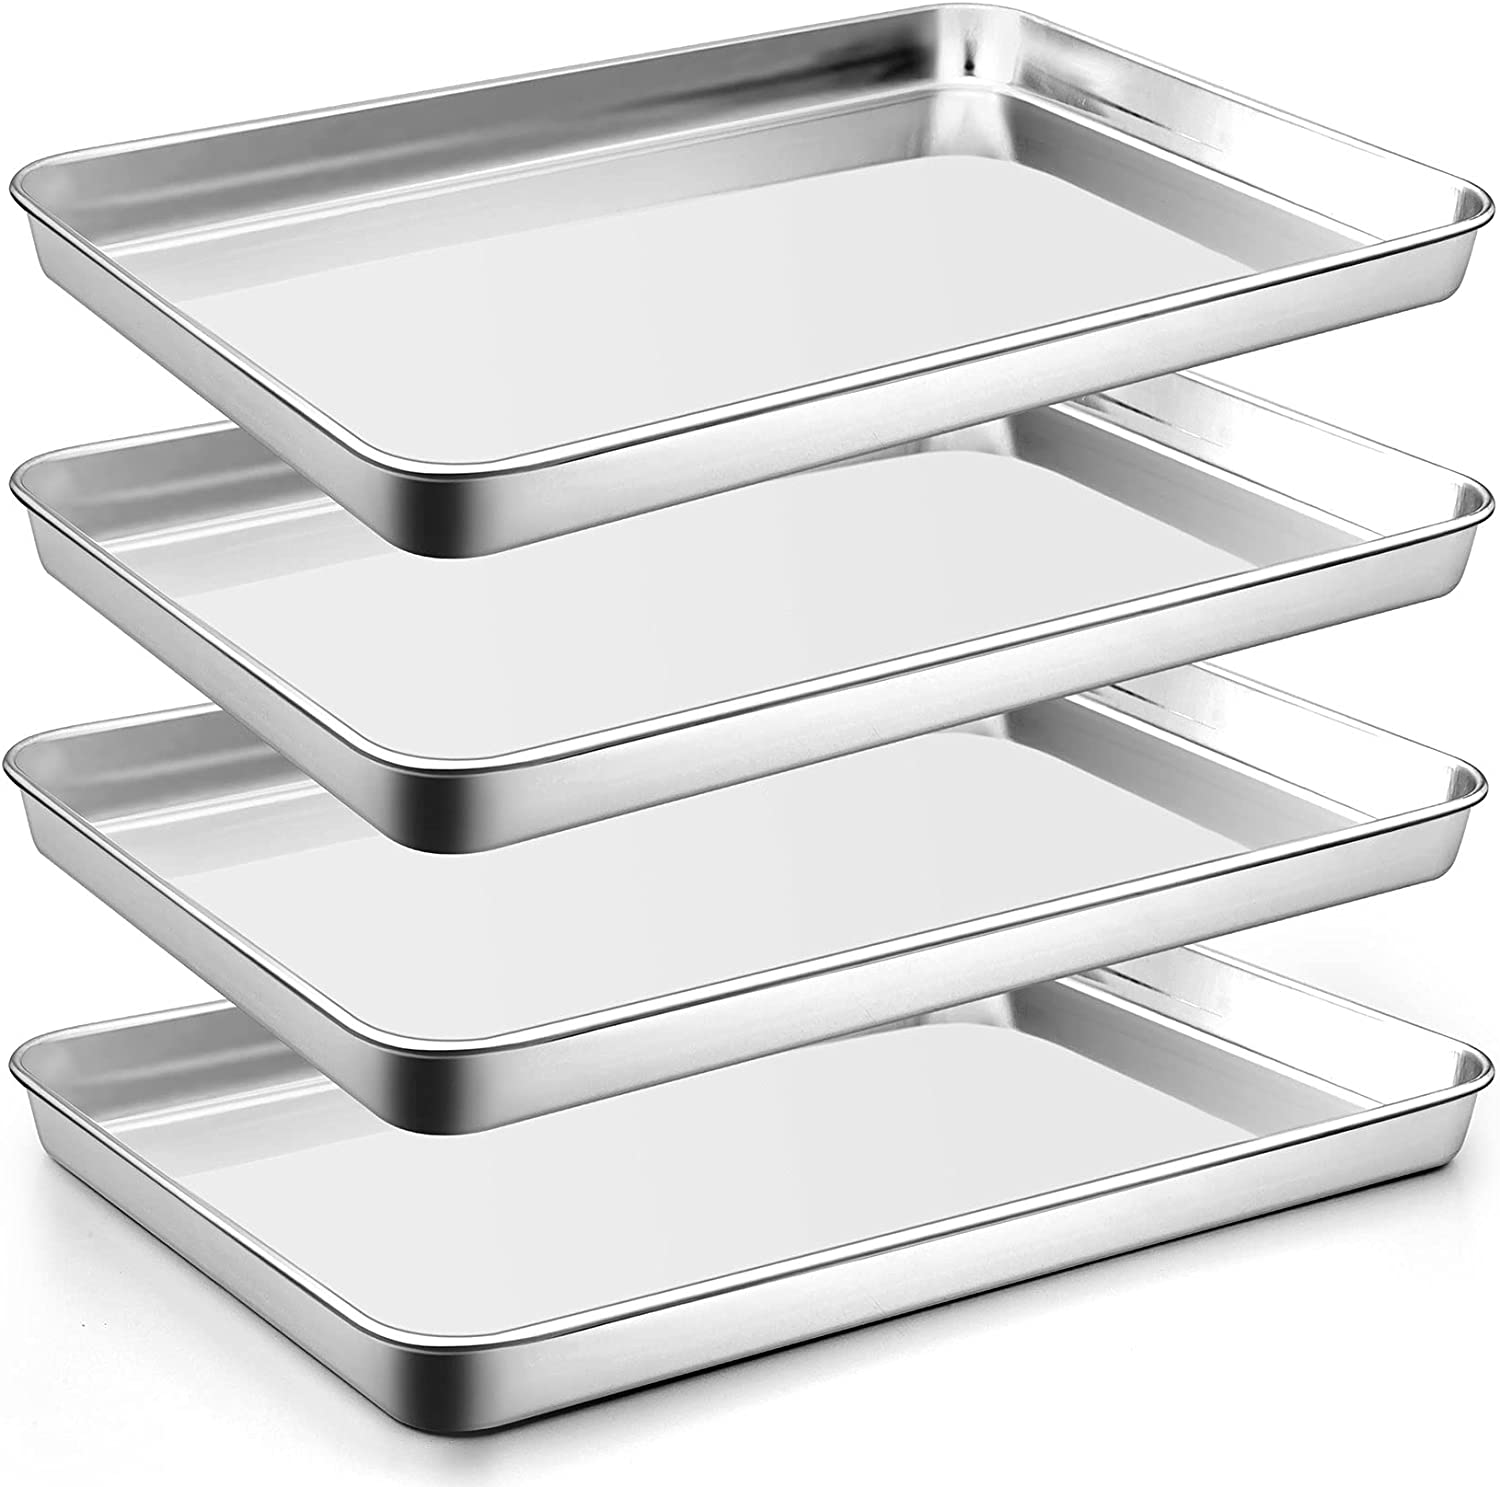 16 Inch excellence Stainless Steel Baking Sheets 4 Baltimore Mall CHEF Set PP of